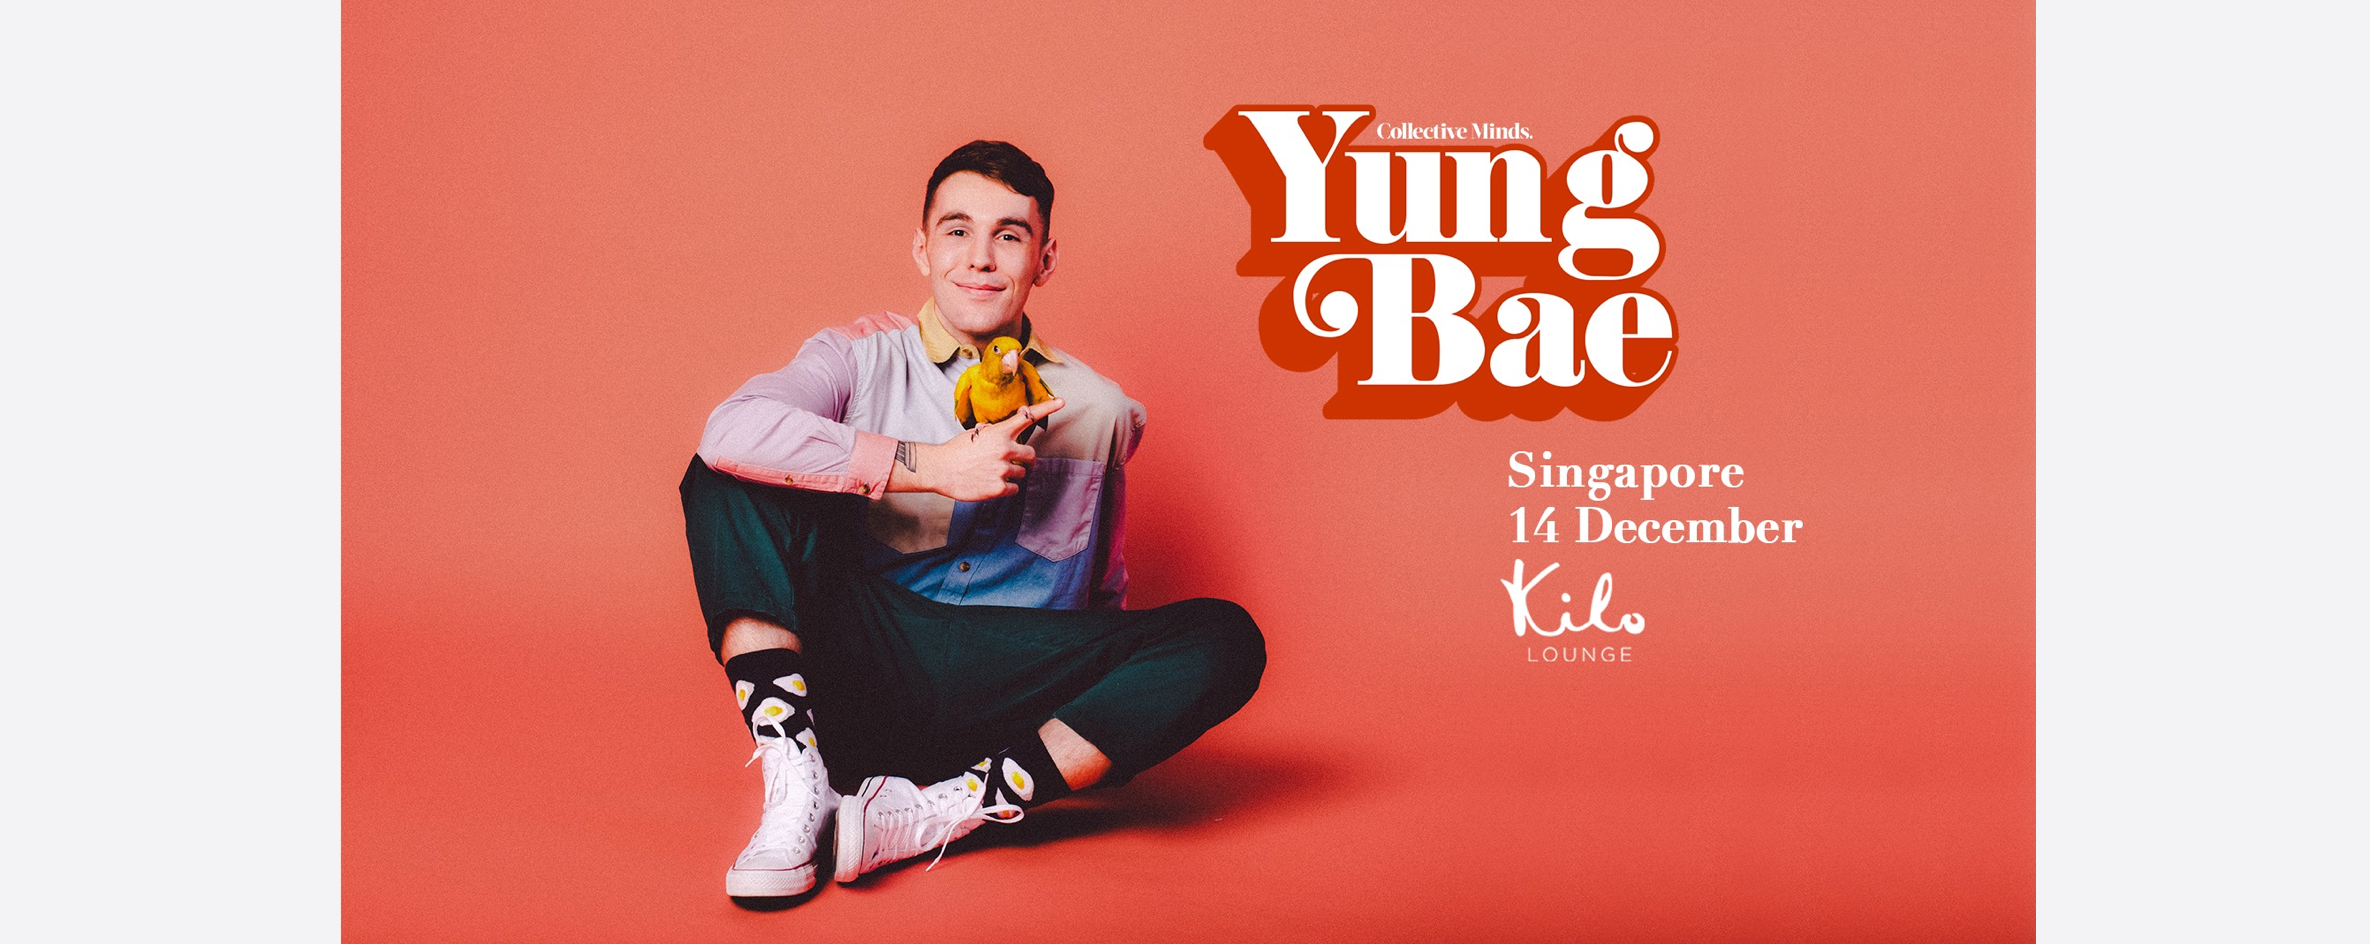 Yung Bae presented by Collective Minds x Kilo Lounge